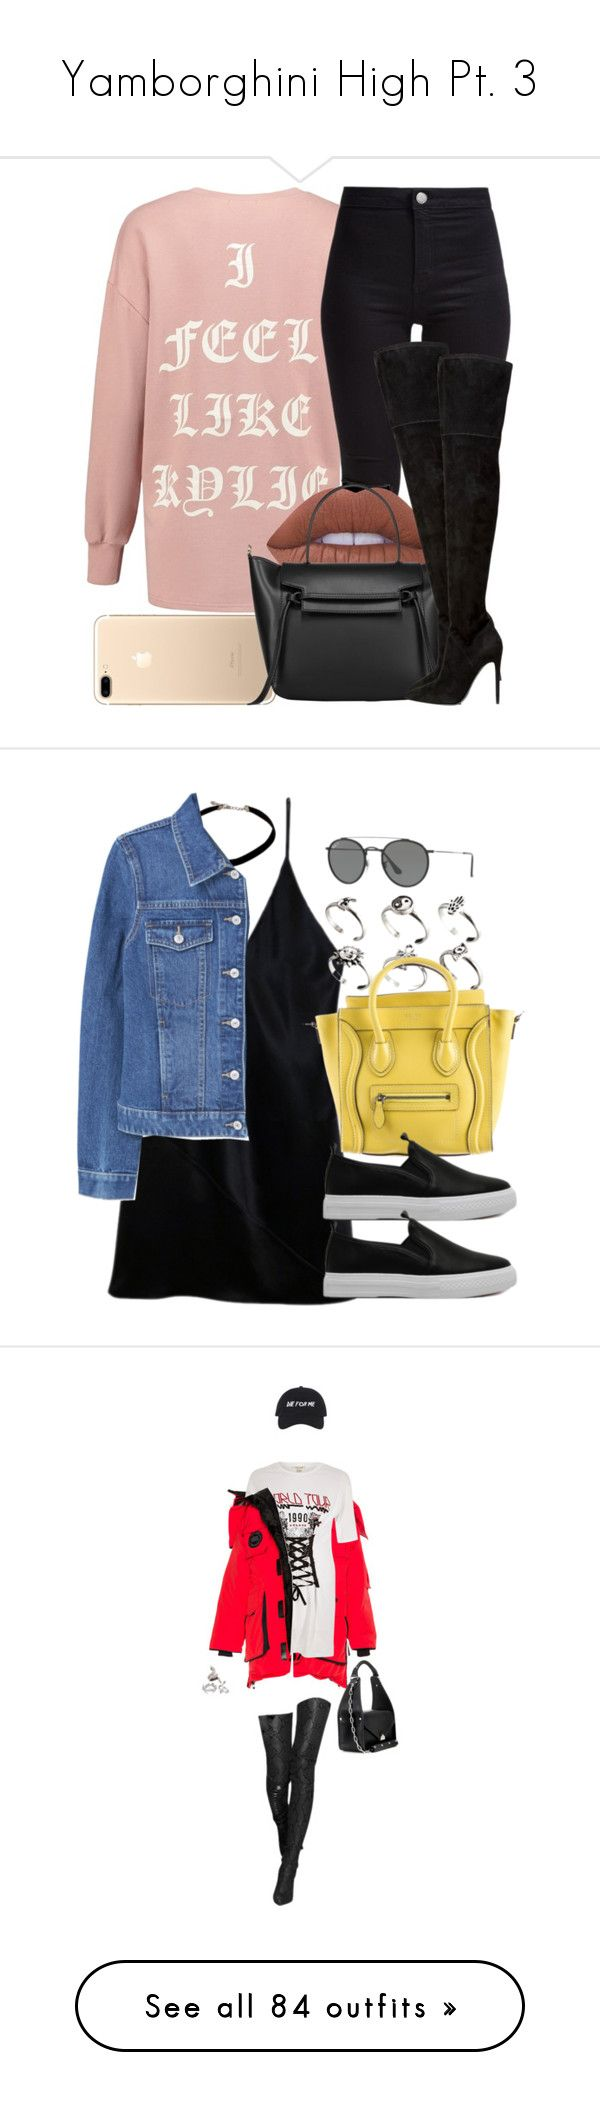 """""""Yamborghini High Pt. 3"""" by rosegoldpersian ❤ liked on Polyvore featuring New Look, Lime Crime, Kendall + Kylie, Fleur du Mal, MANGO, ASOS, CÉLINE, Ray-Ban, Balenciaga and River Island"""